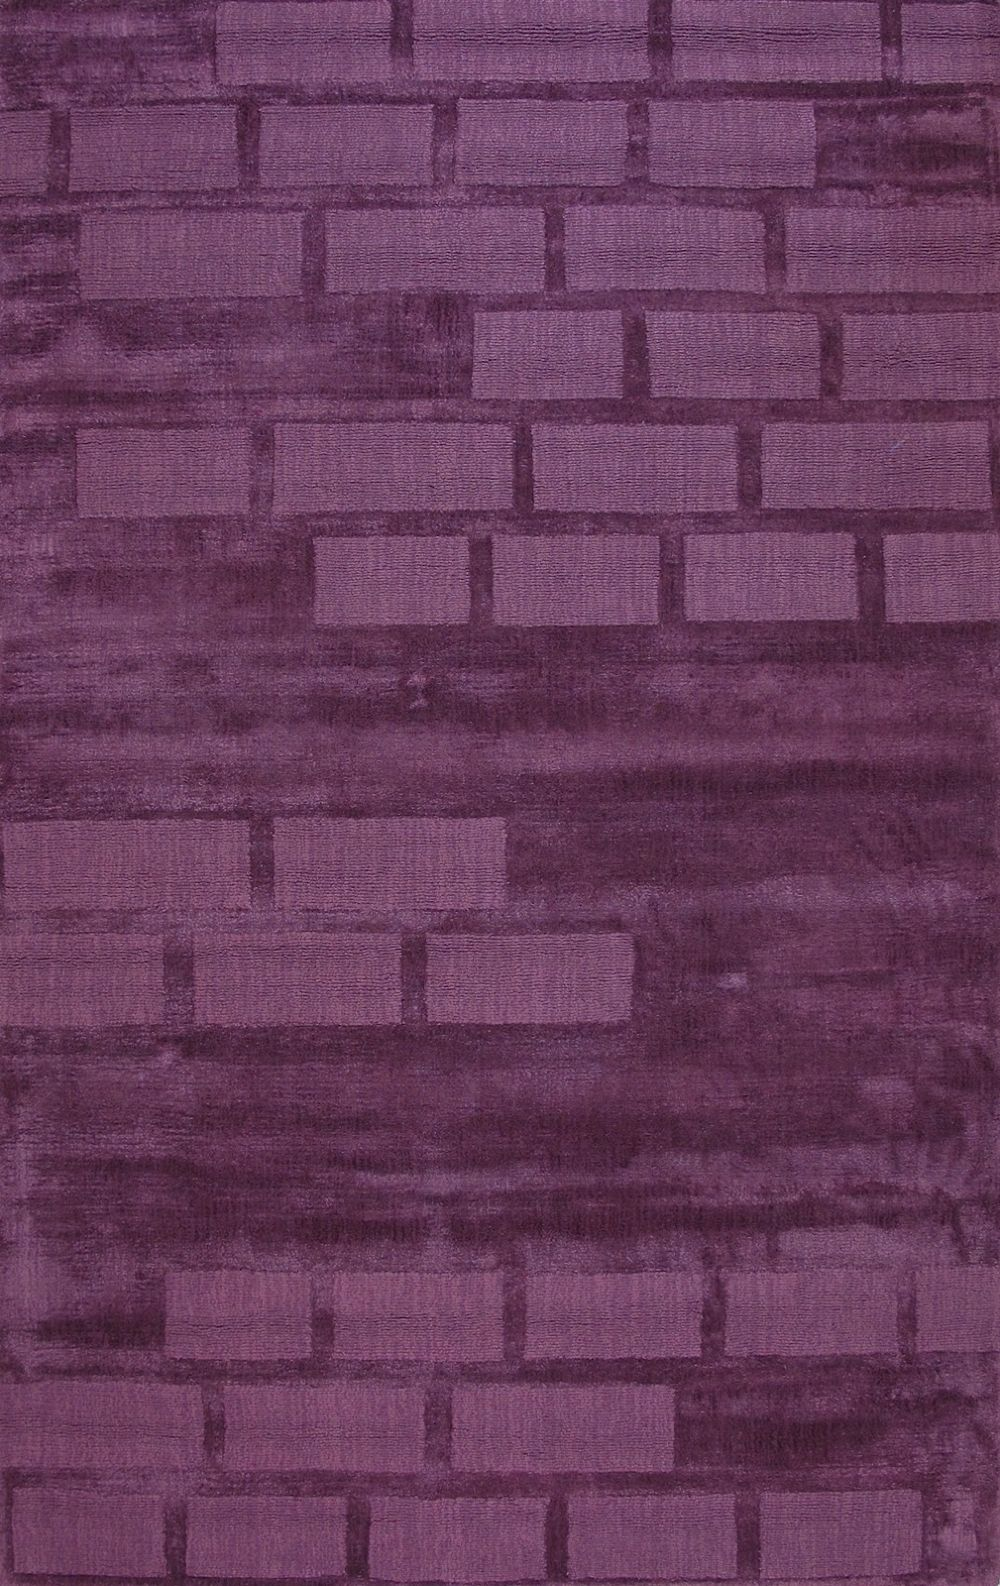 la rugs mumbai contemporary area rug collection